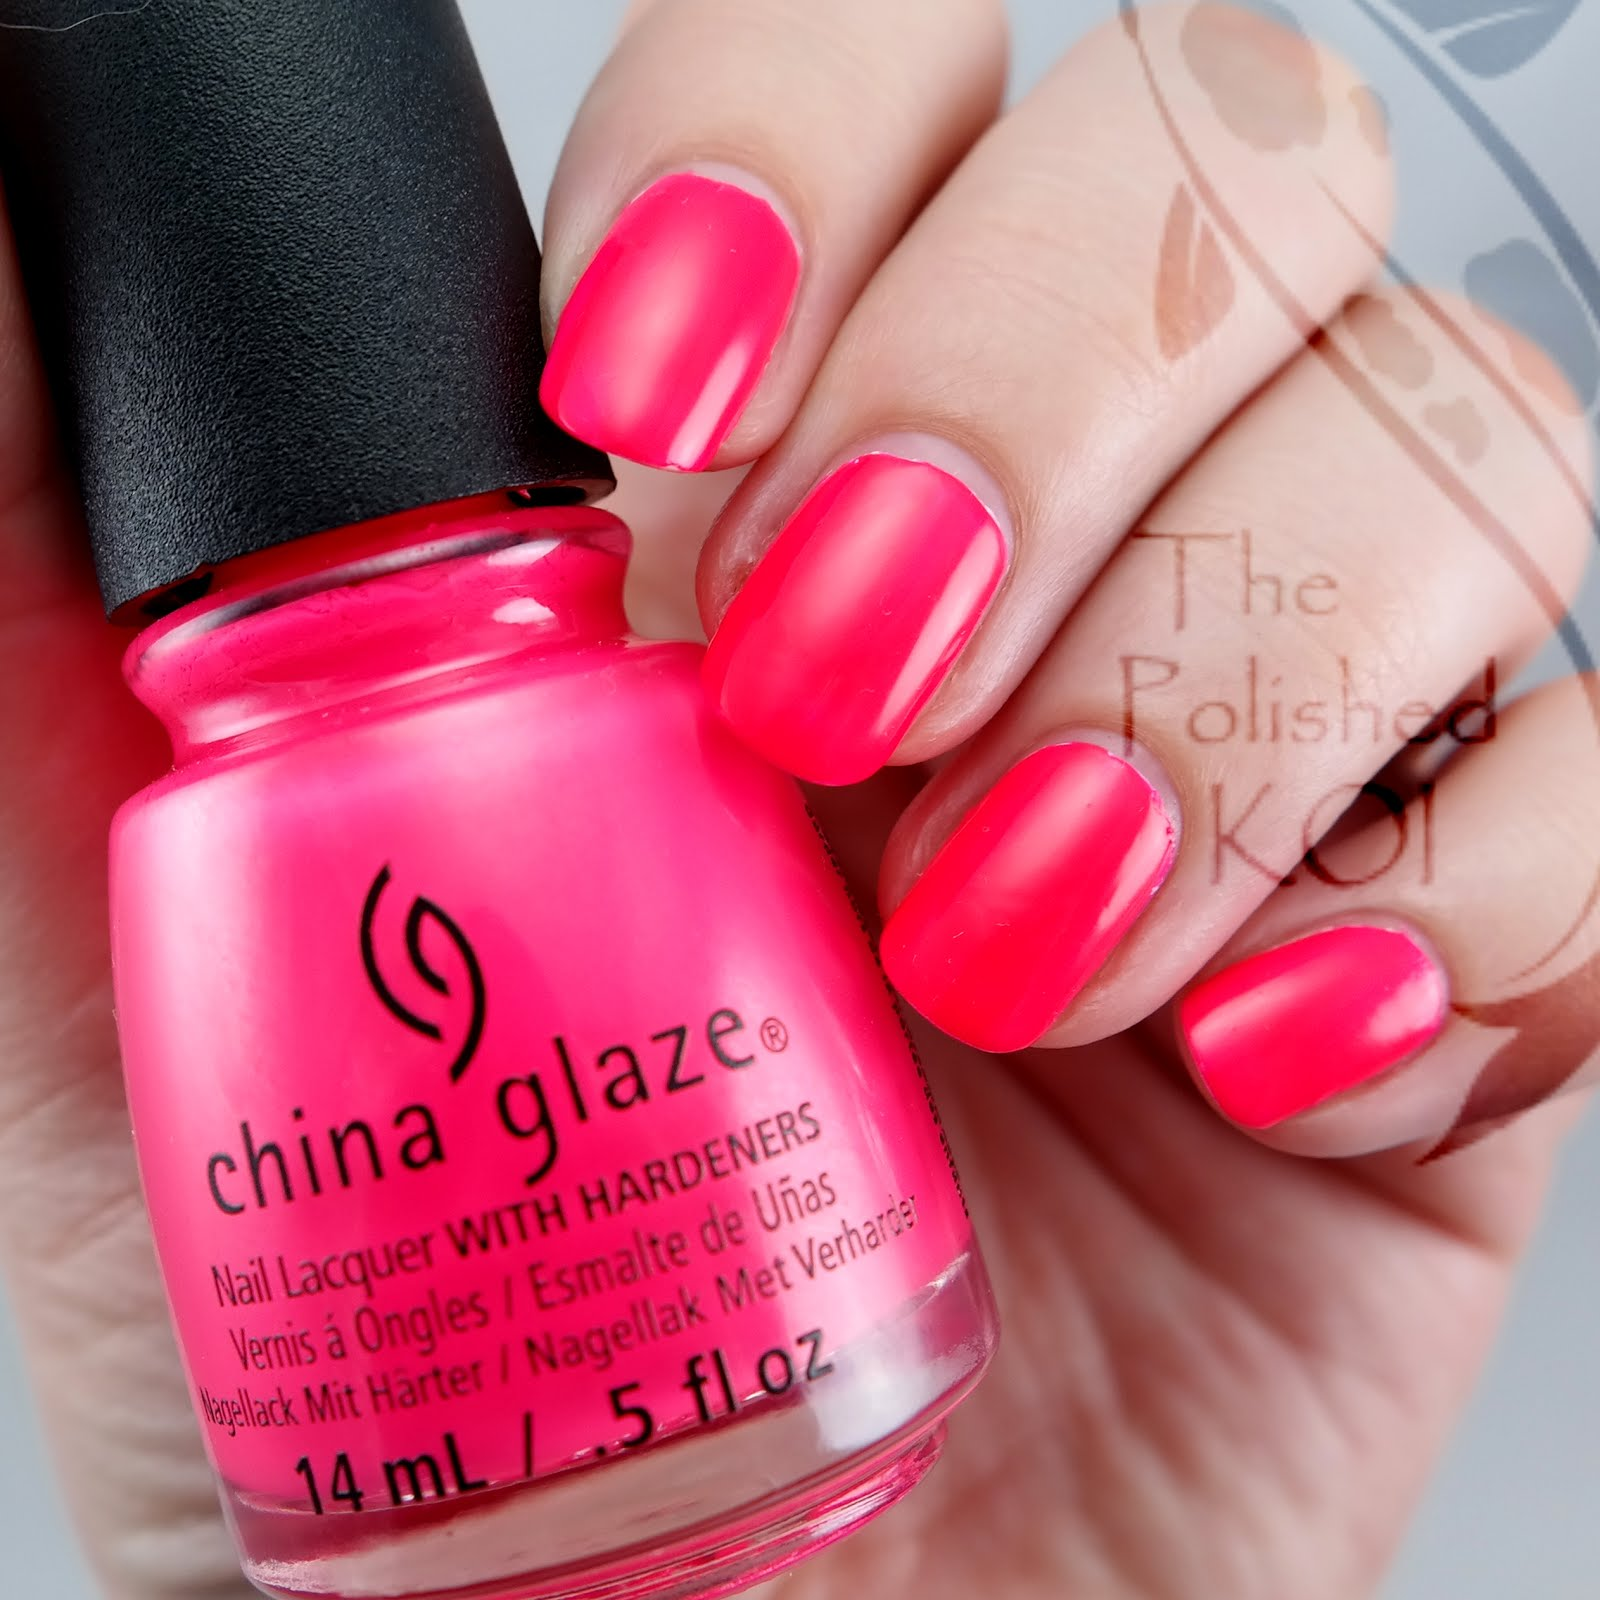 The Polished KOI: Stamping Saturday: Neon Watermelons